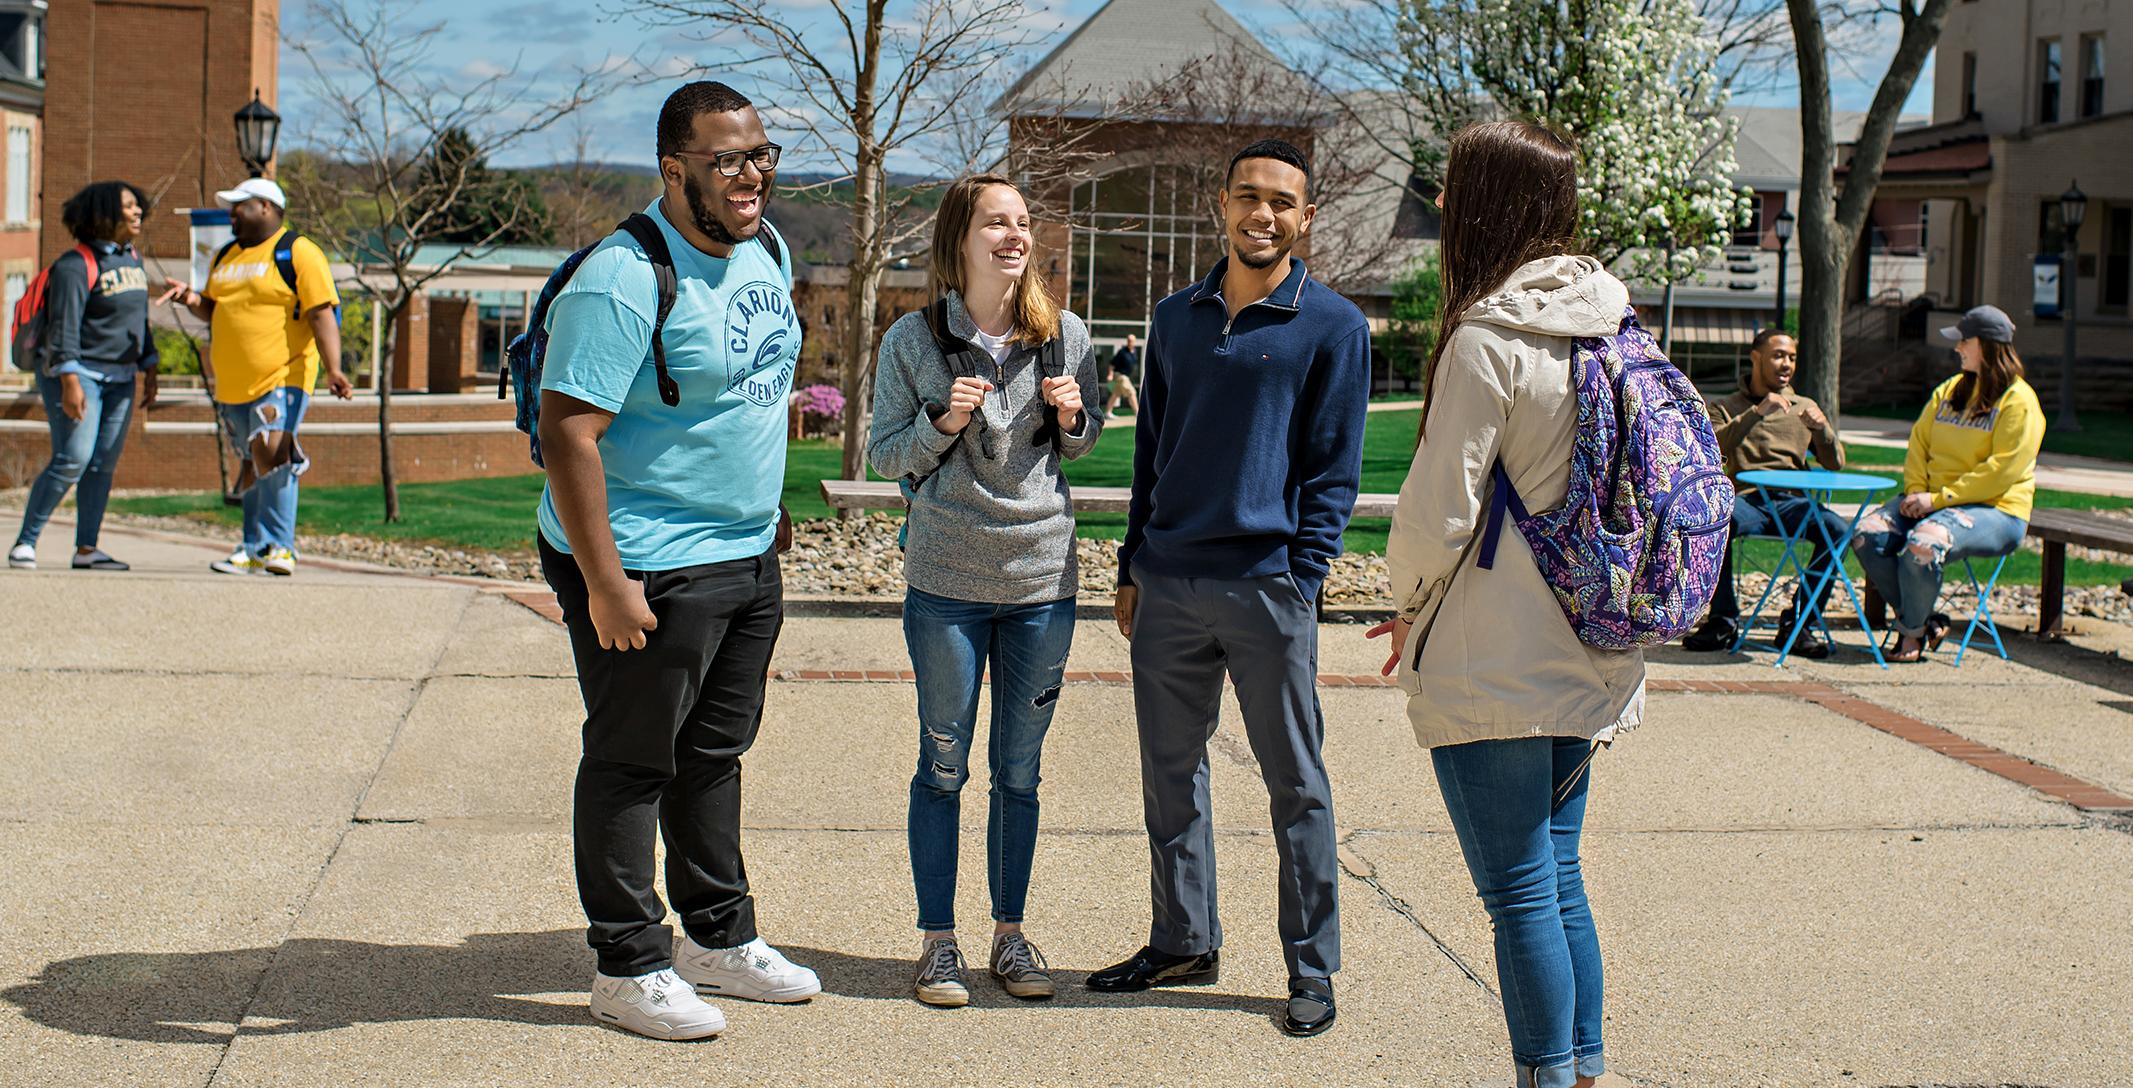 Early data shoes rise in freshmen, academic readiness and diversity